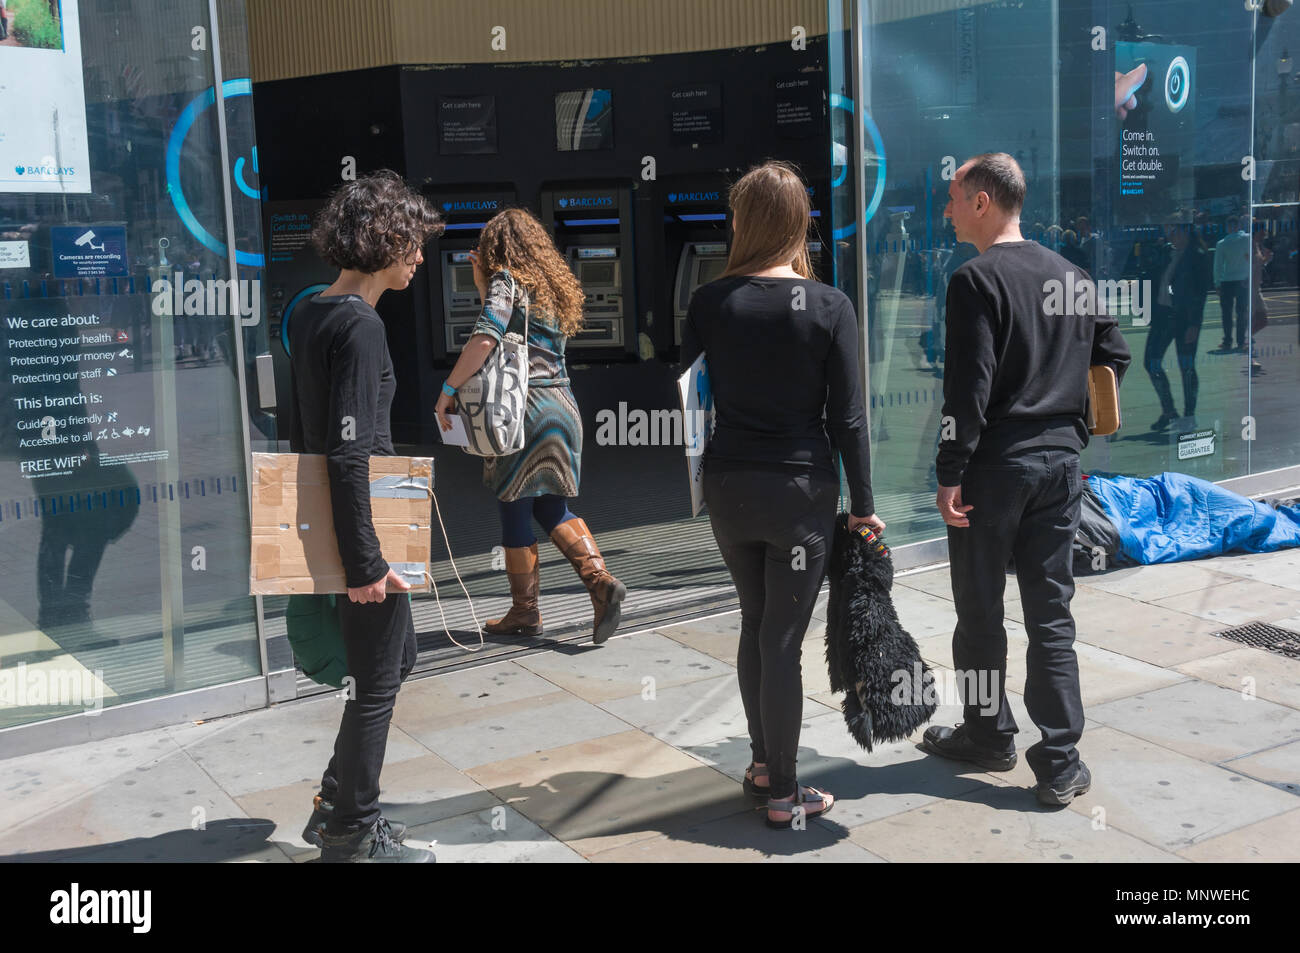 London, UK. 19th May 2018. Four members of the Dharma Action Network for Climate Engagement (DANCE) enter the Piccadilly Circus branch of Barclays Bank to call on them to Stop Funding Climate Chaos. Credit: Peter Marshall/Alamy Live News - Stock Image